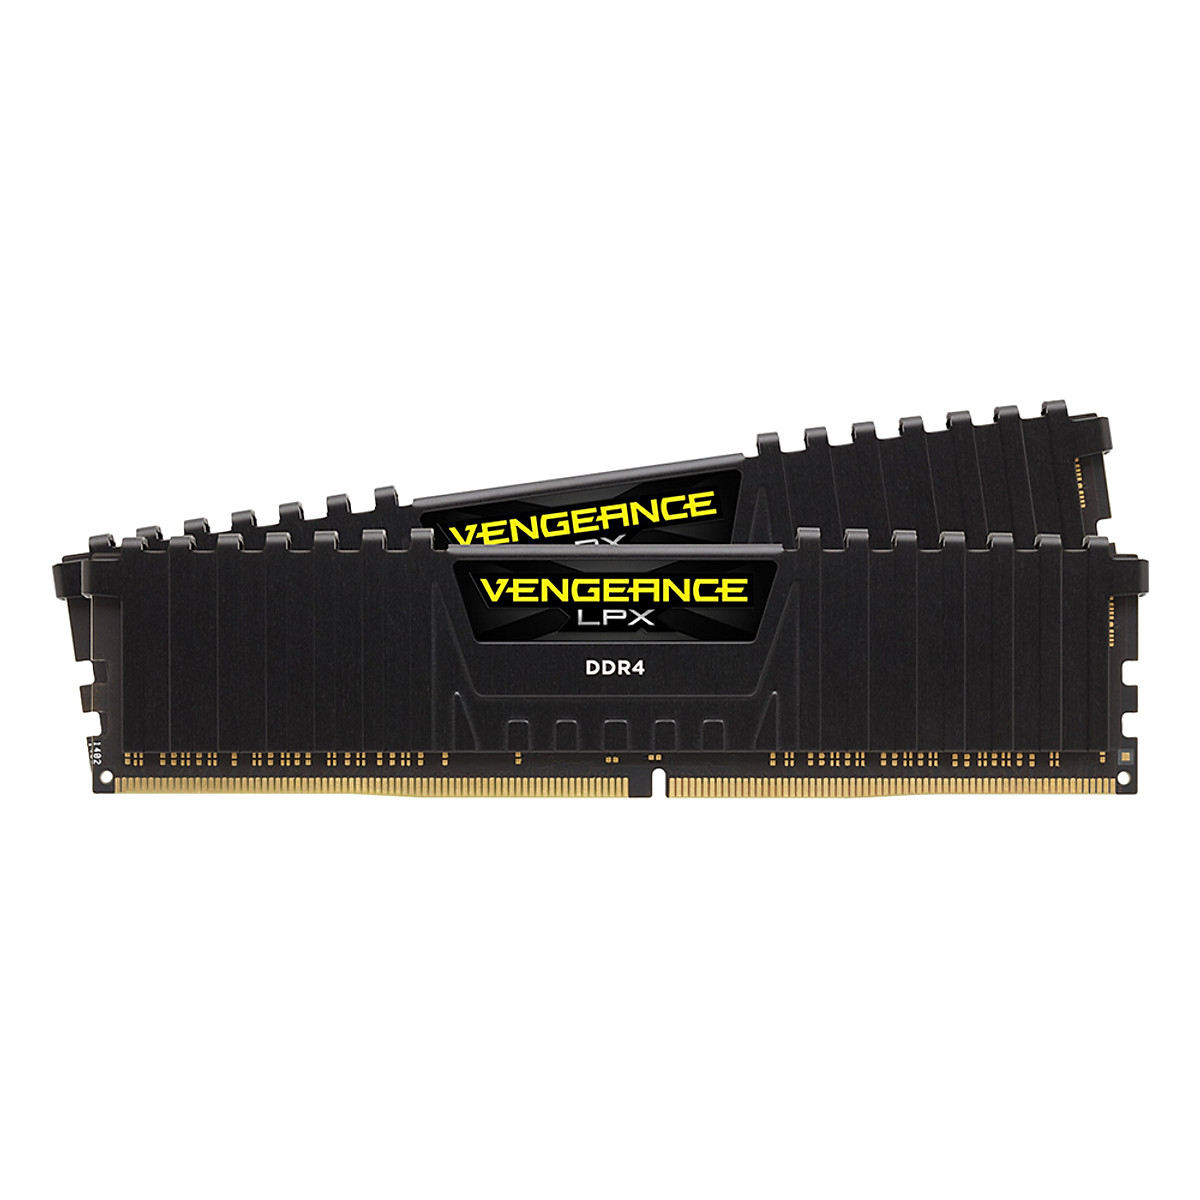 RAM_Corsair_Vengeance_LPX_16GB_(2x8GB)_DDR4_2666MHz_For_Ryzen